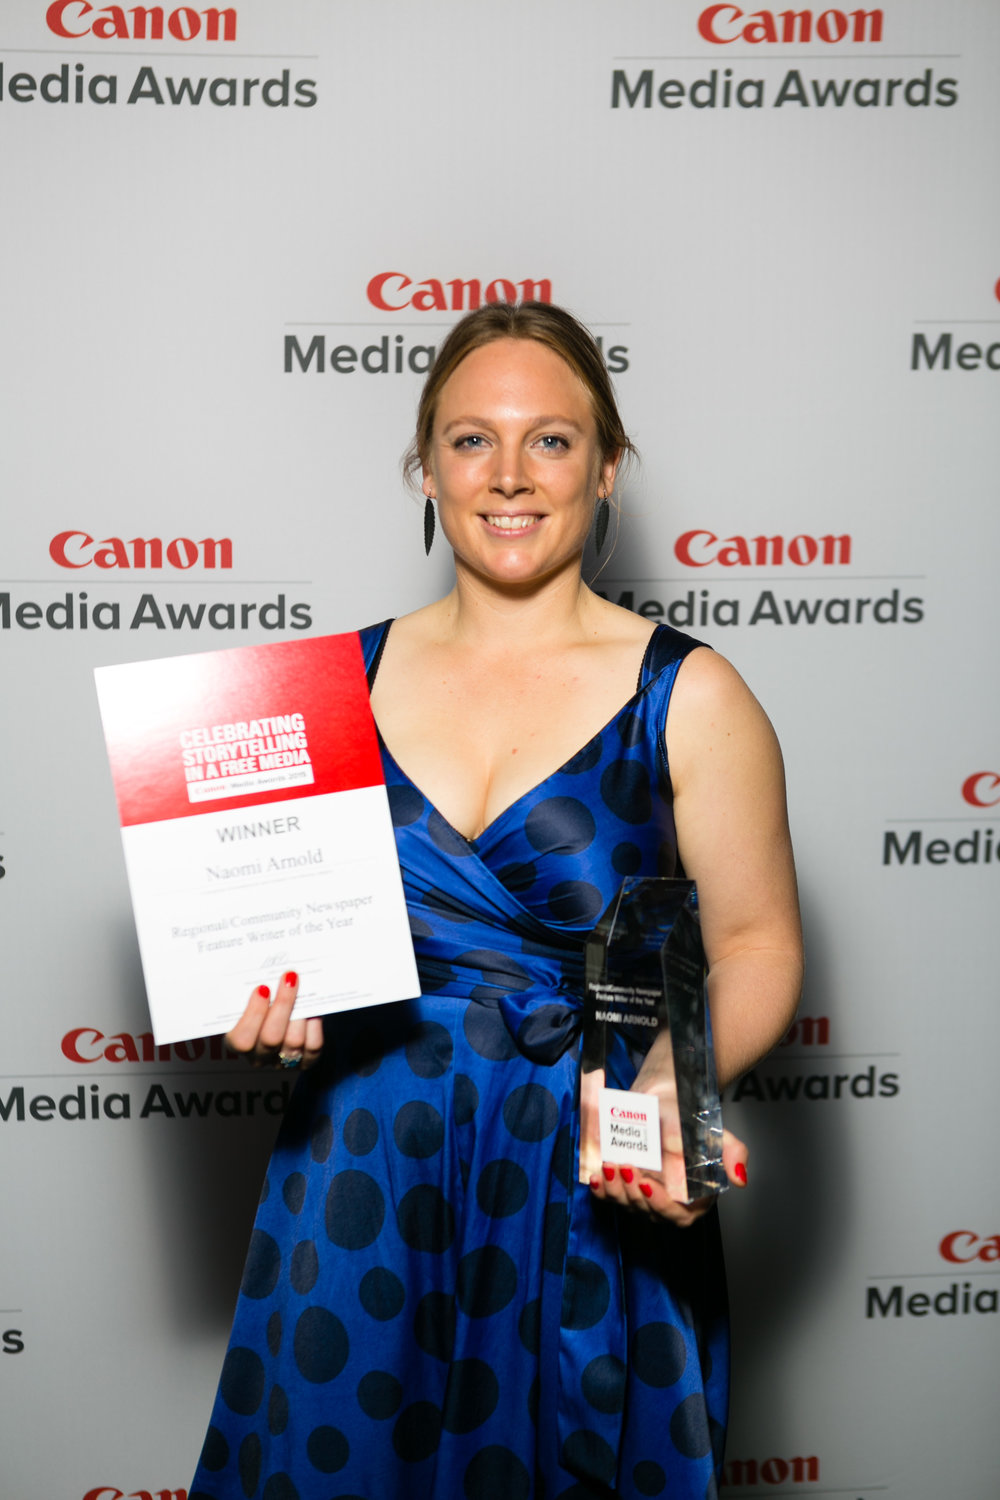 canon_media_awards_2015_interlike_nz_clinton_tudor-5901-178.jpg